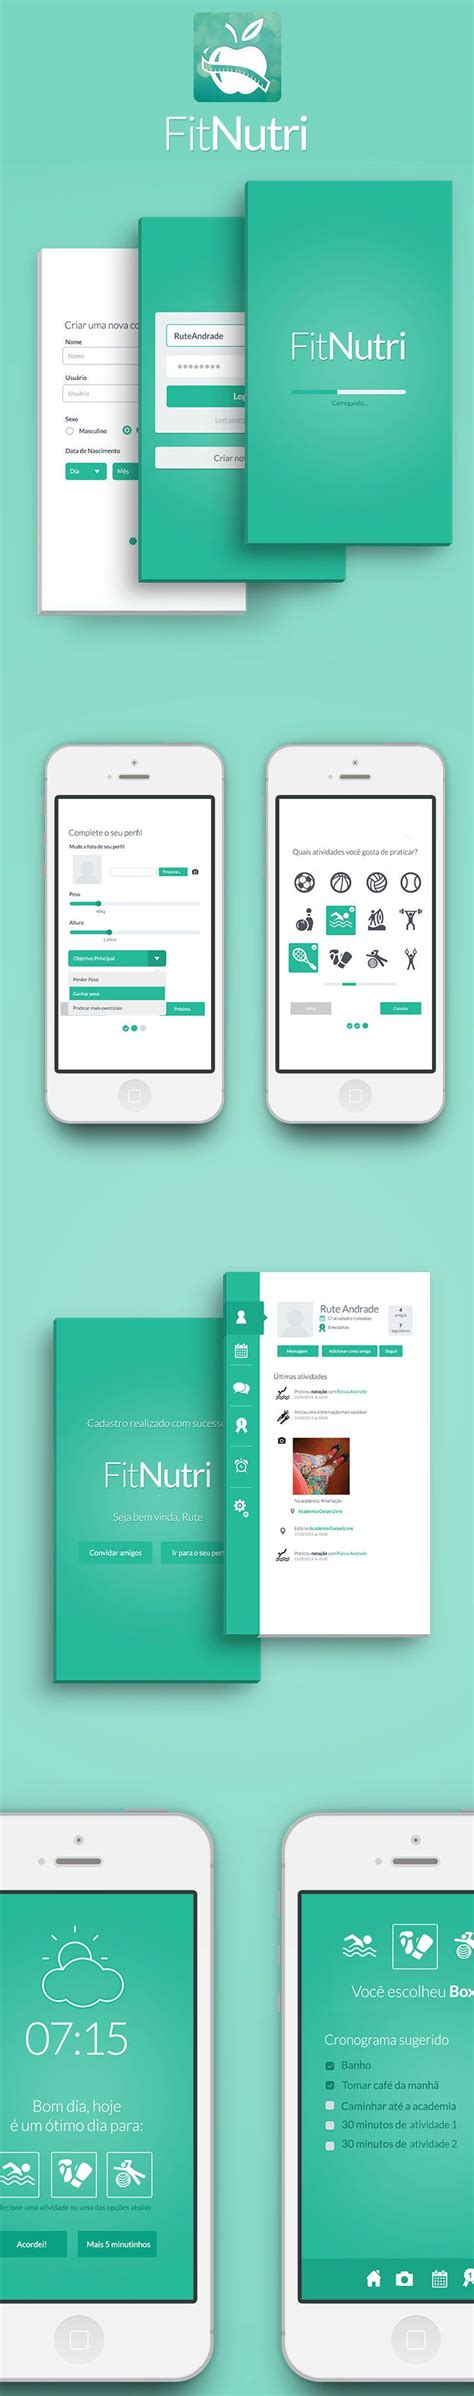 layout in app design 14 best images about mobile app design on pinterest